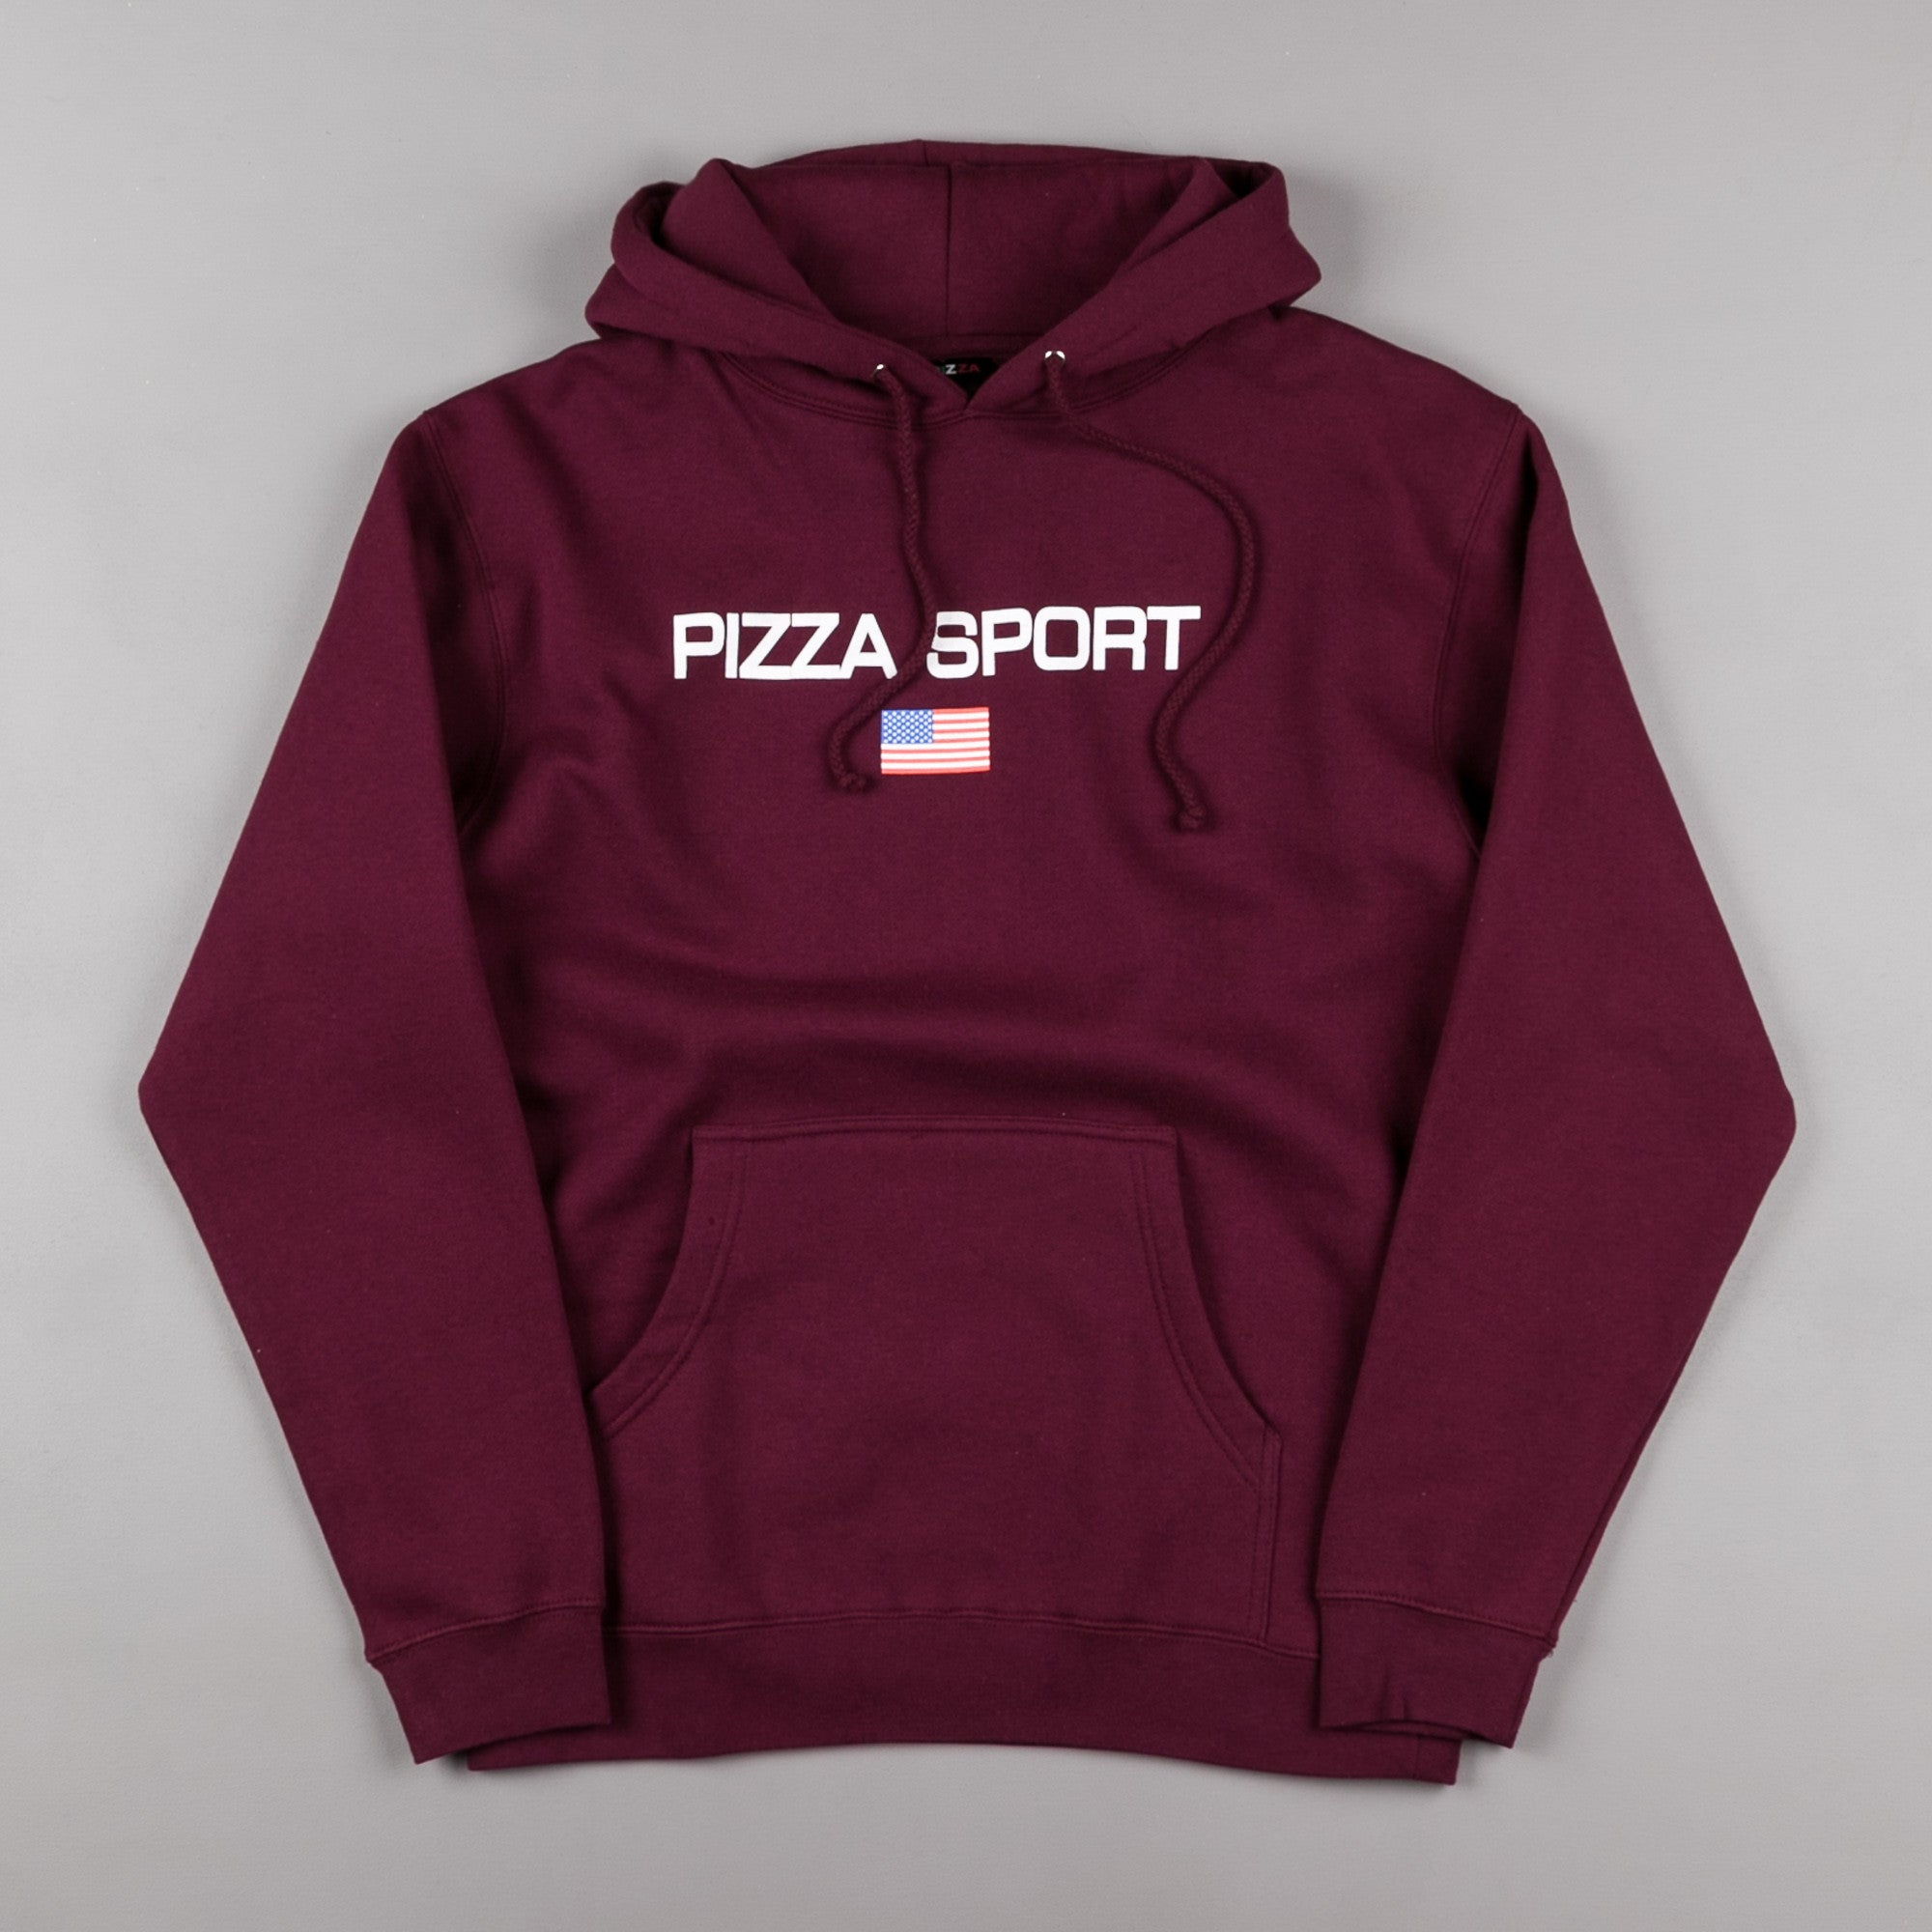 Pizza Skateboards Pizza Sport Hooded Sweatshirt - Burgundy